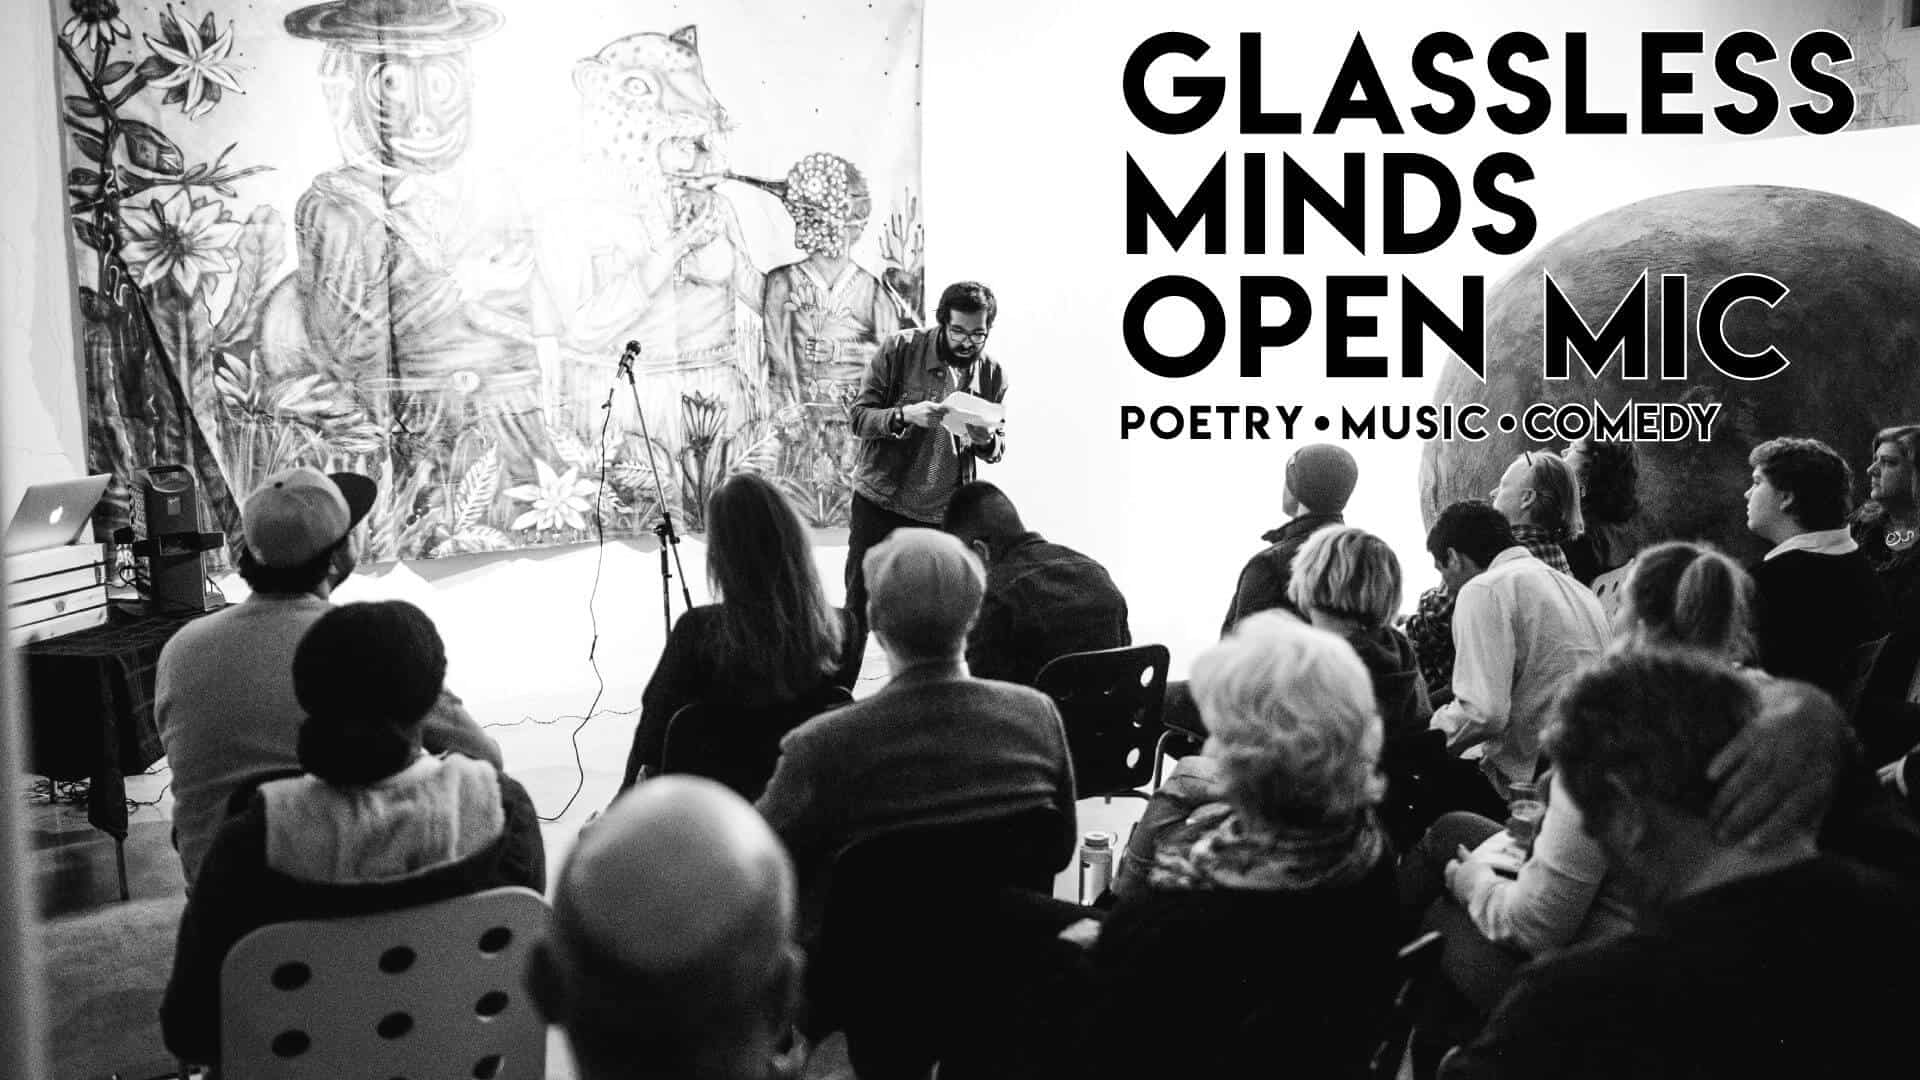 Glassless Minds Open Mic feat. Rudy Francisco